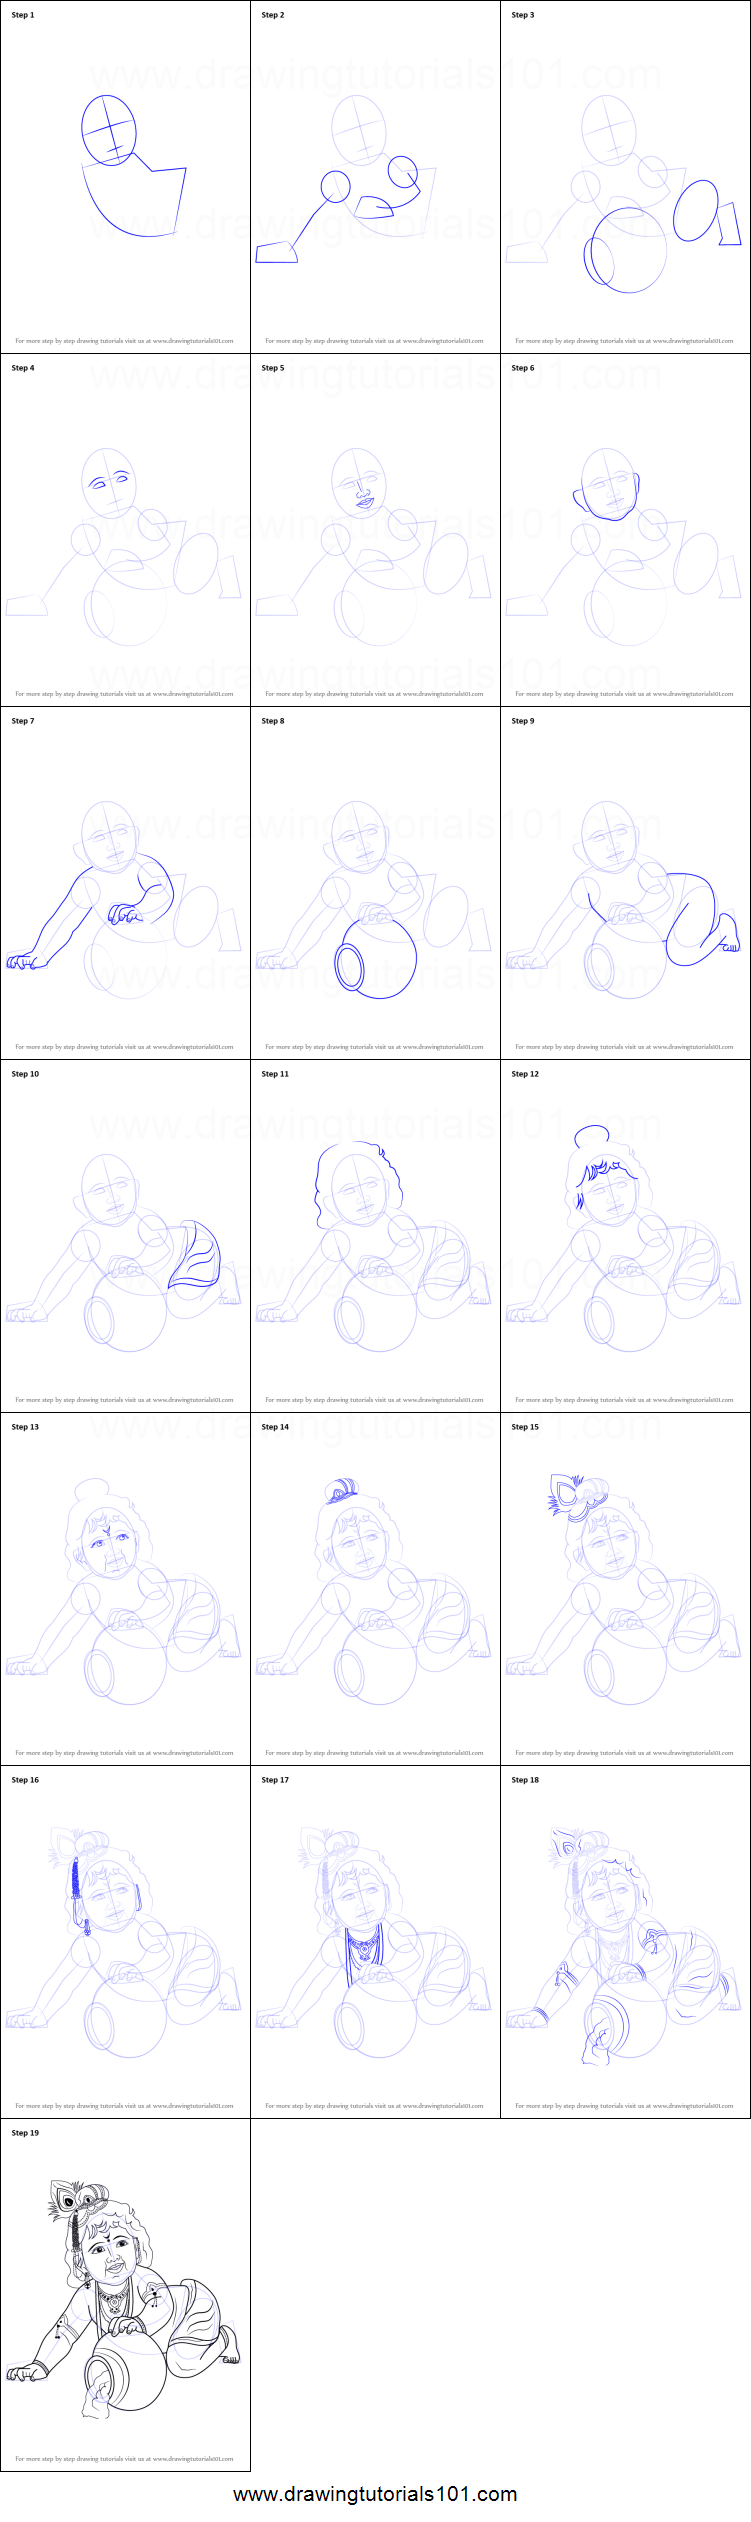 How To Draw Baby Lord Krishna Printable Step By Step Drawing Sheet